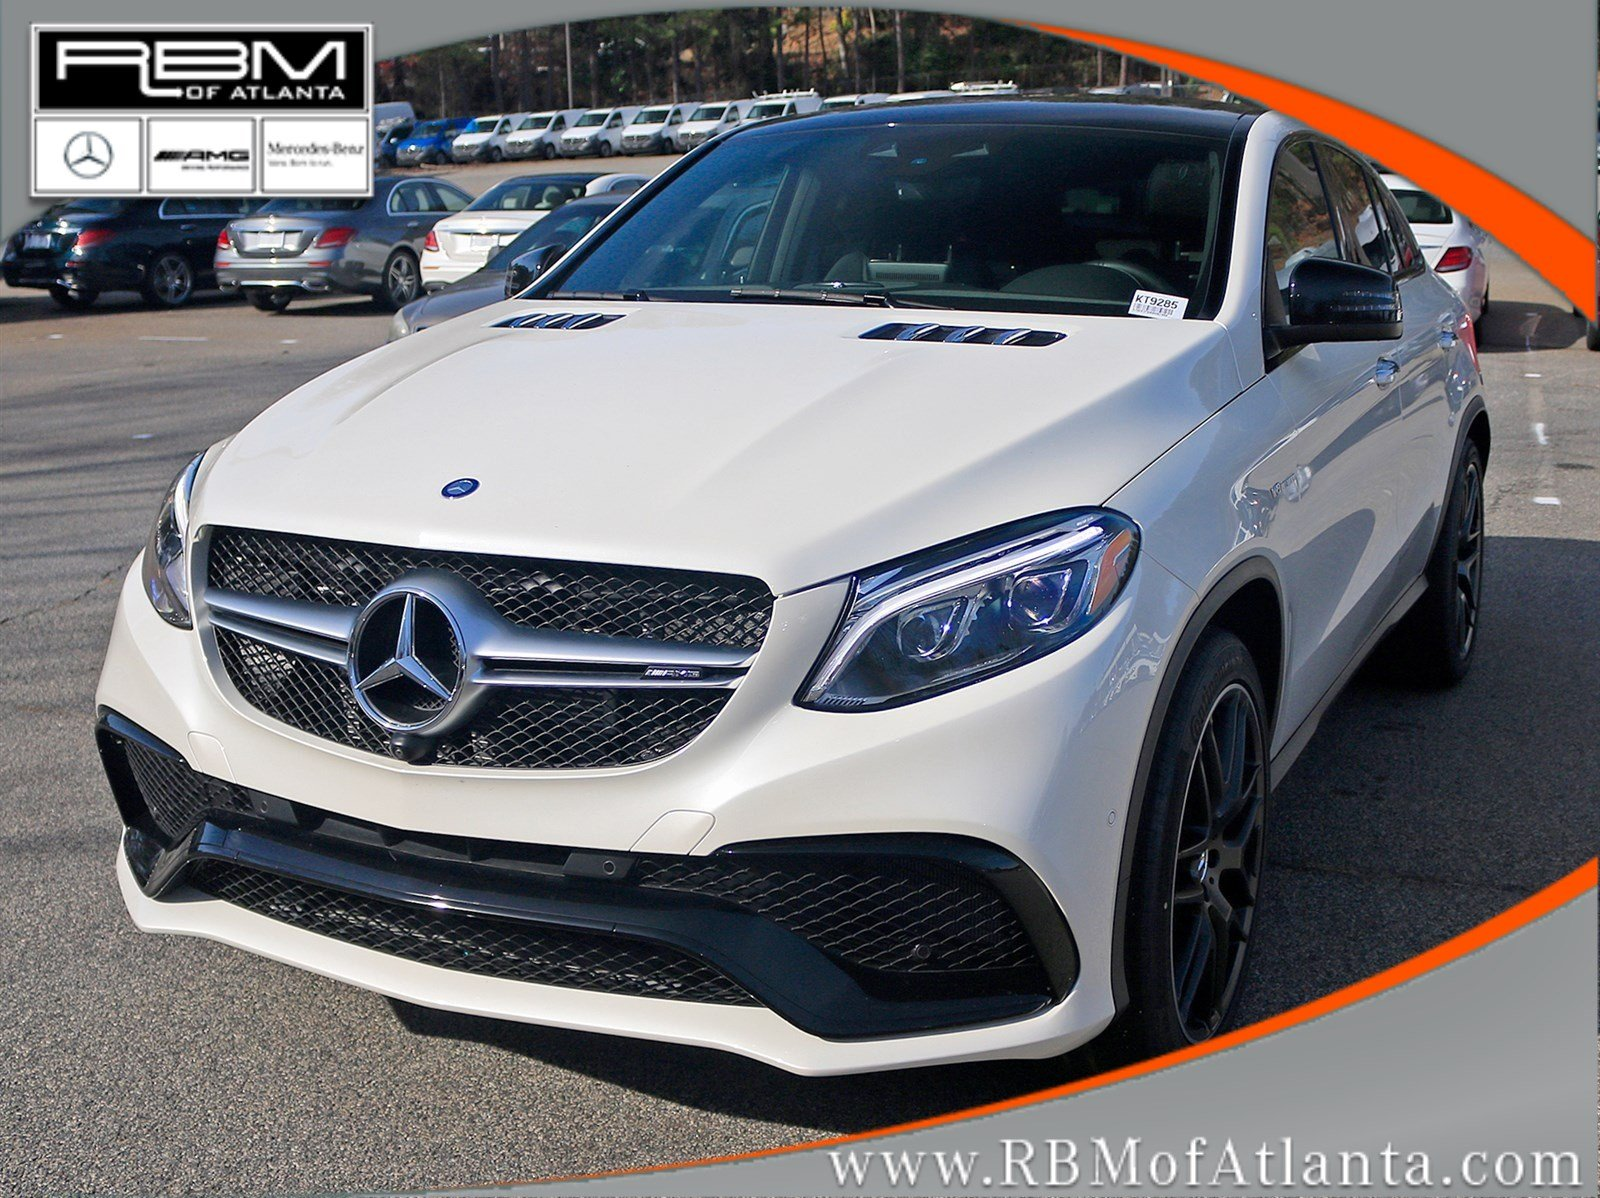 New 2017 mercedes benz gle gle 63 s amg coupe coupe in for 2017 amg gle 63 mercedes benz